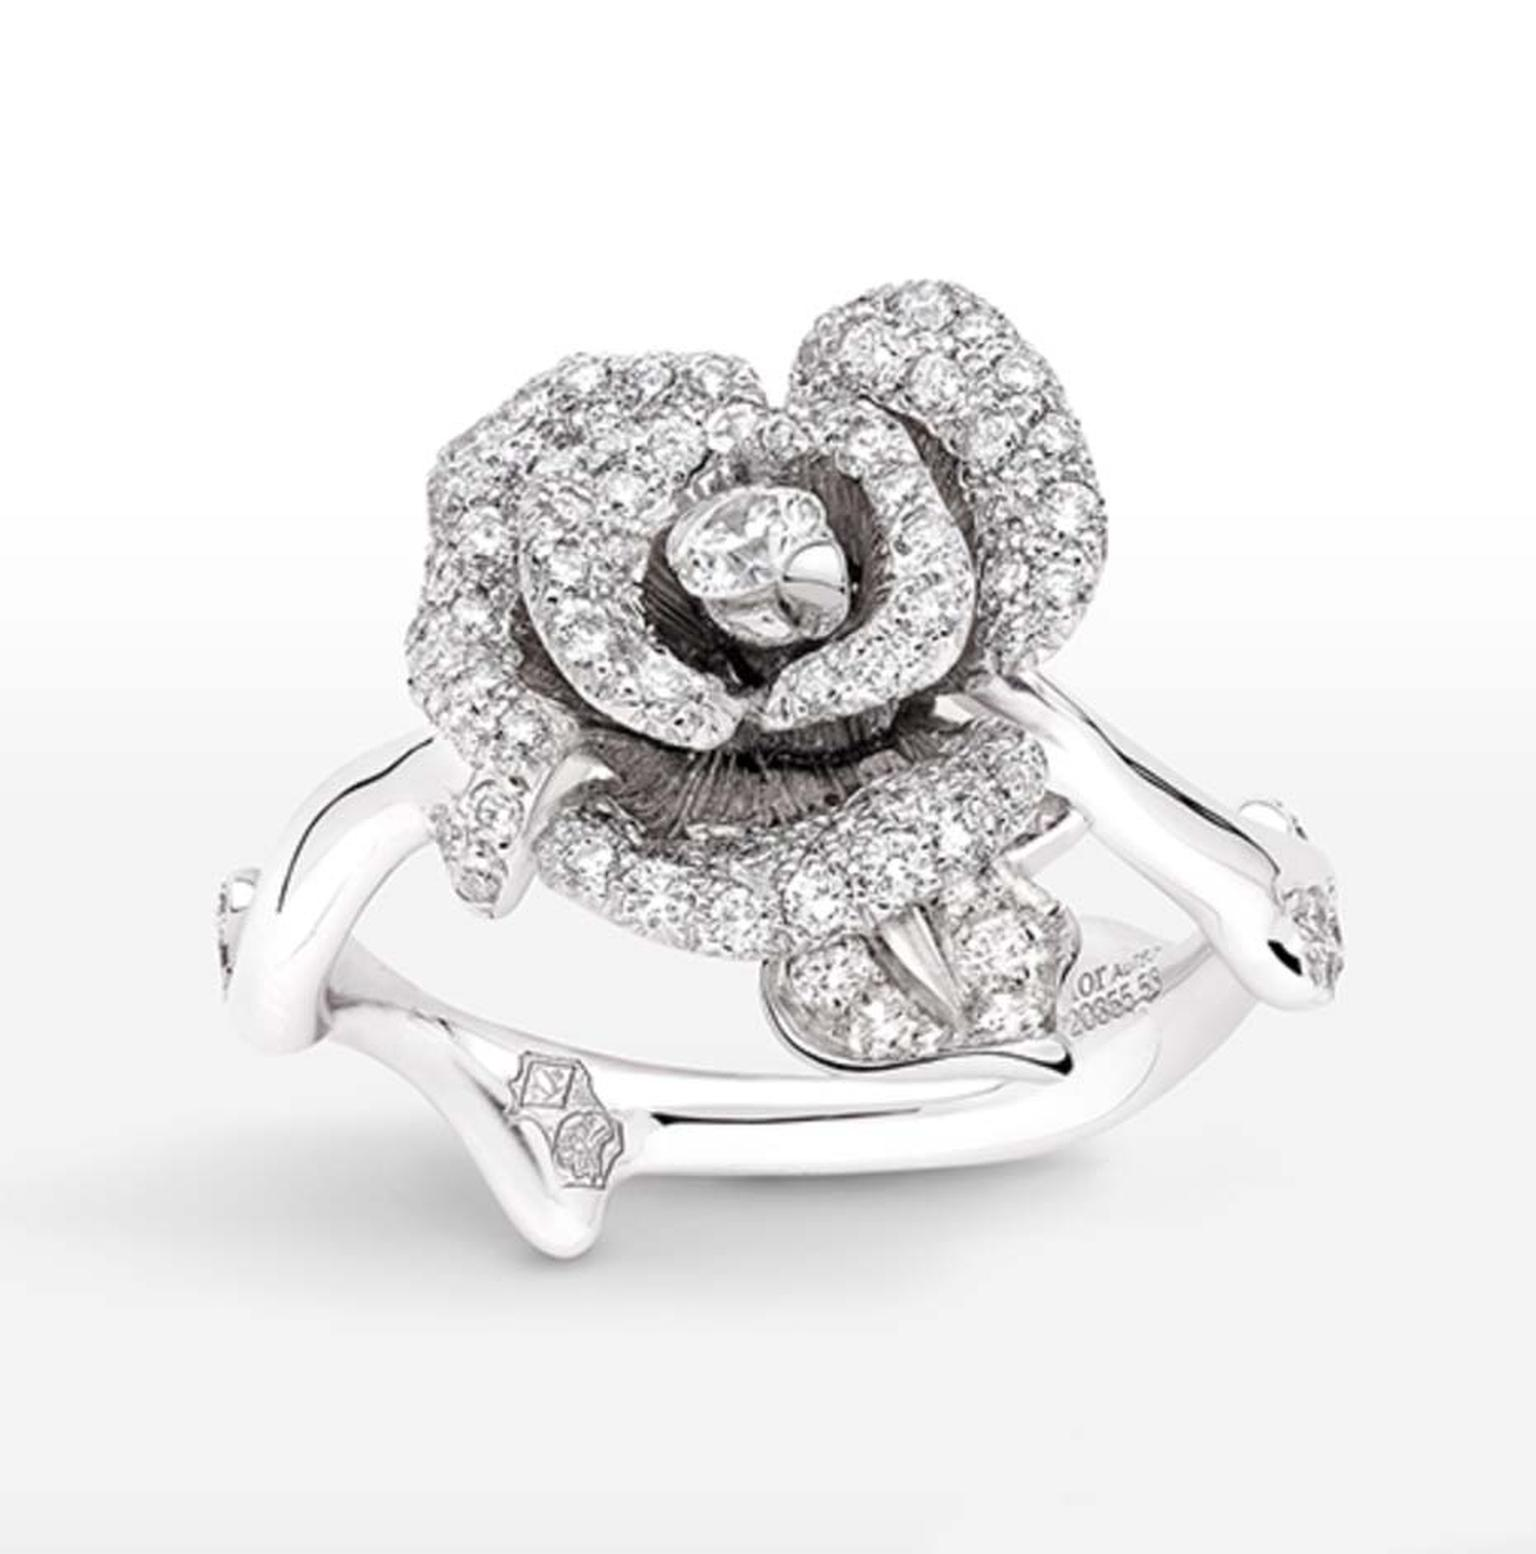 Christian Dior's favourite flower, the rose, was the inspiration behind the Rose Dior Bagatelle collection, which includes this white gold and diamond Dior ring.